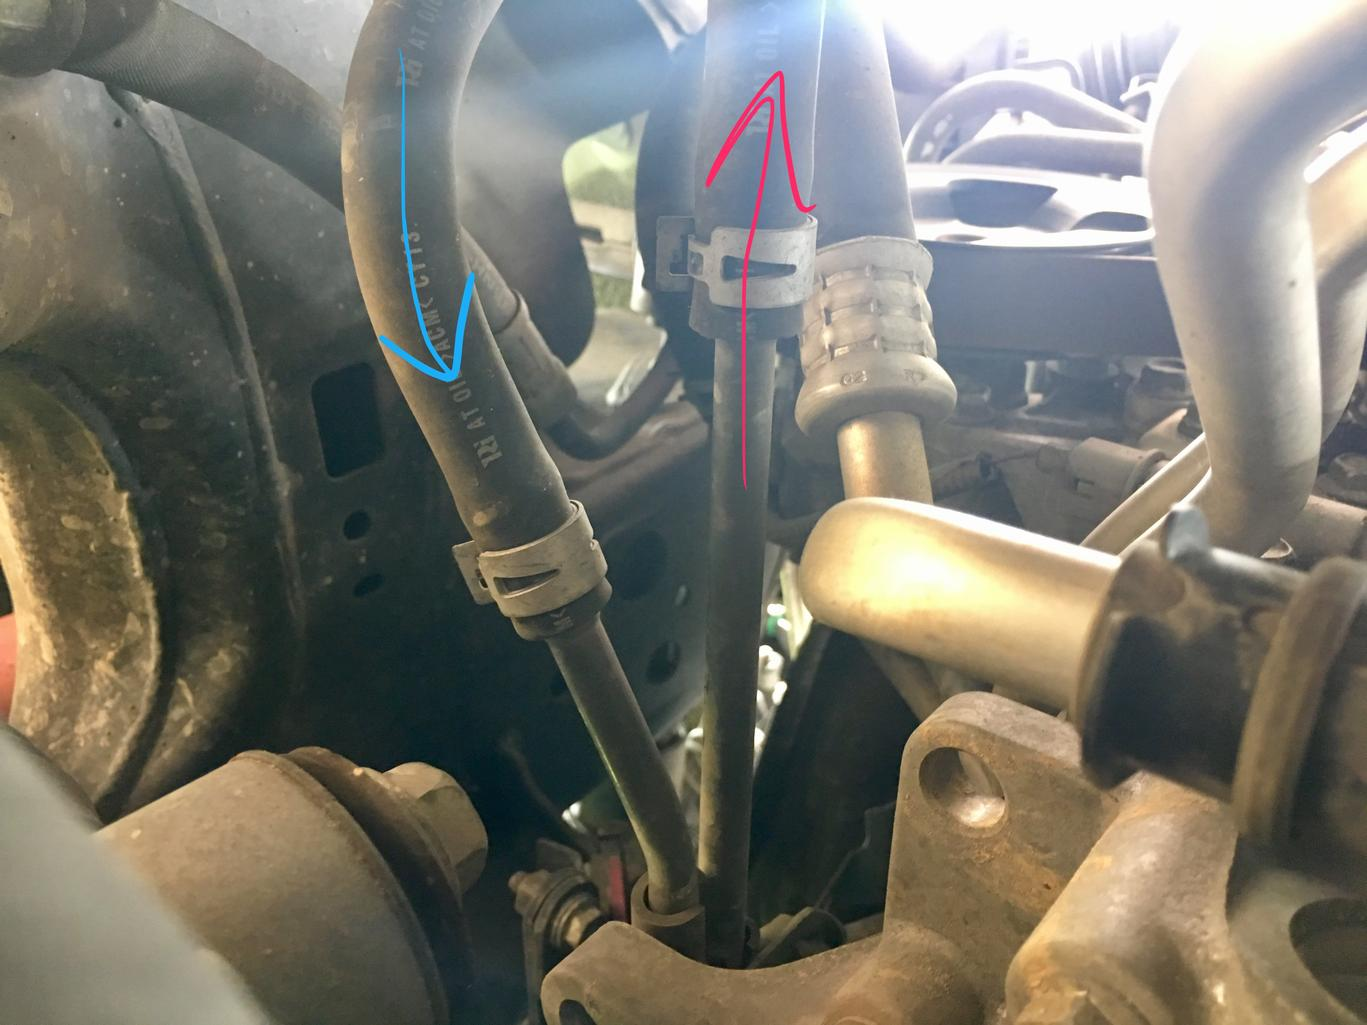 Transmission Cooler Page 10 Toyota 4runner Forum Largest Trailer Tow Wiring W 4 Pin Connector Oil Attached Img 3561 1371 Kb 3559 1233